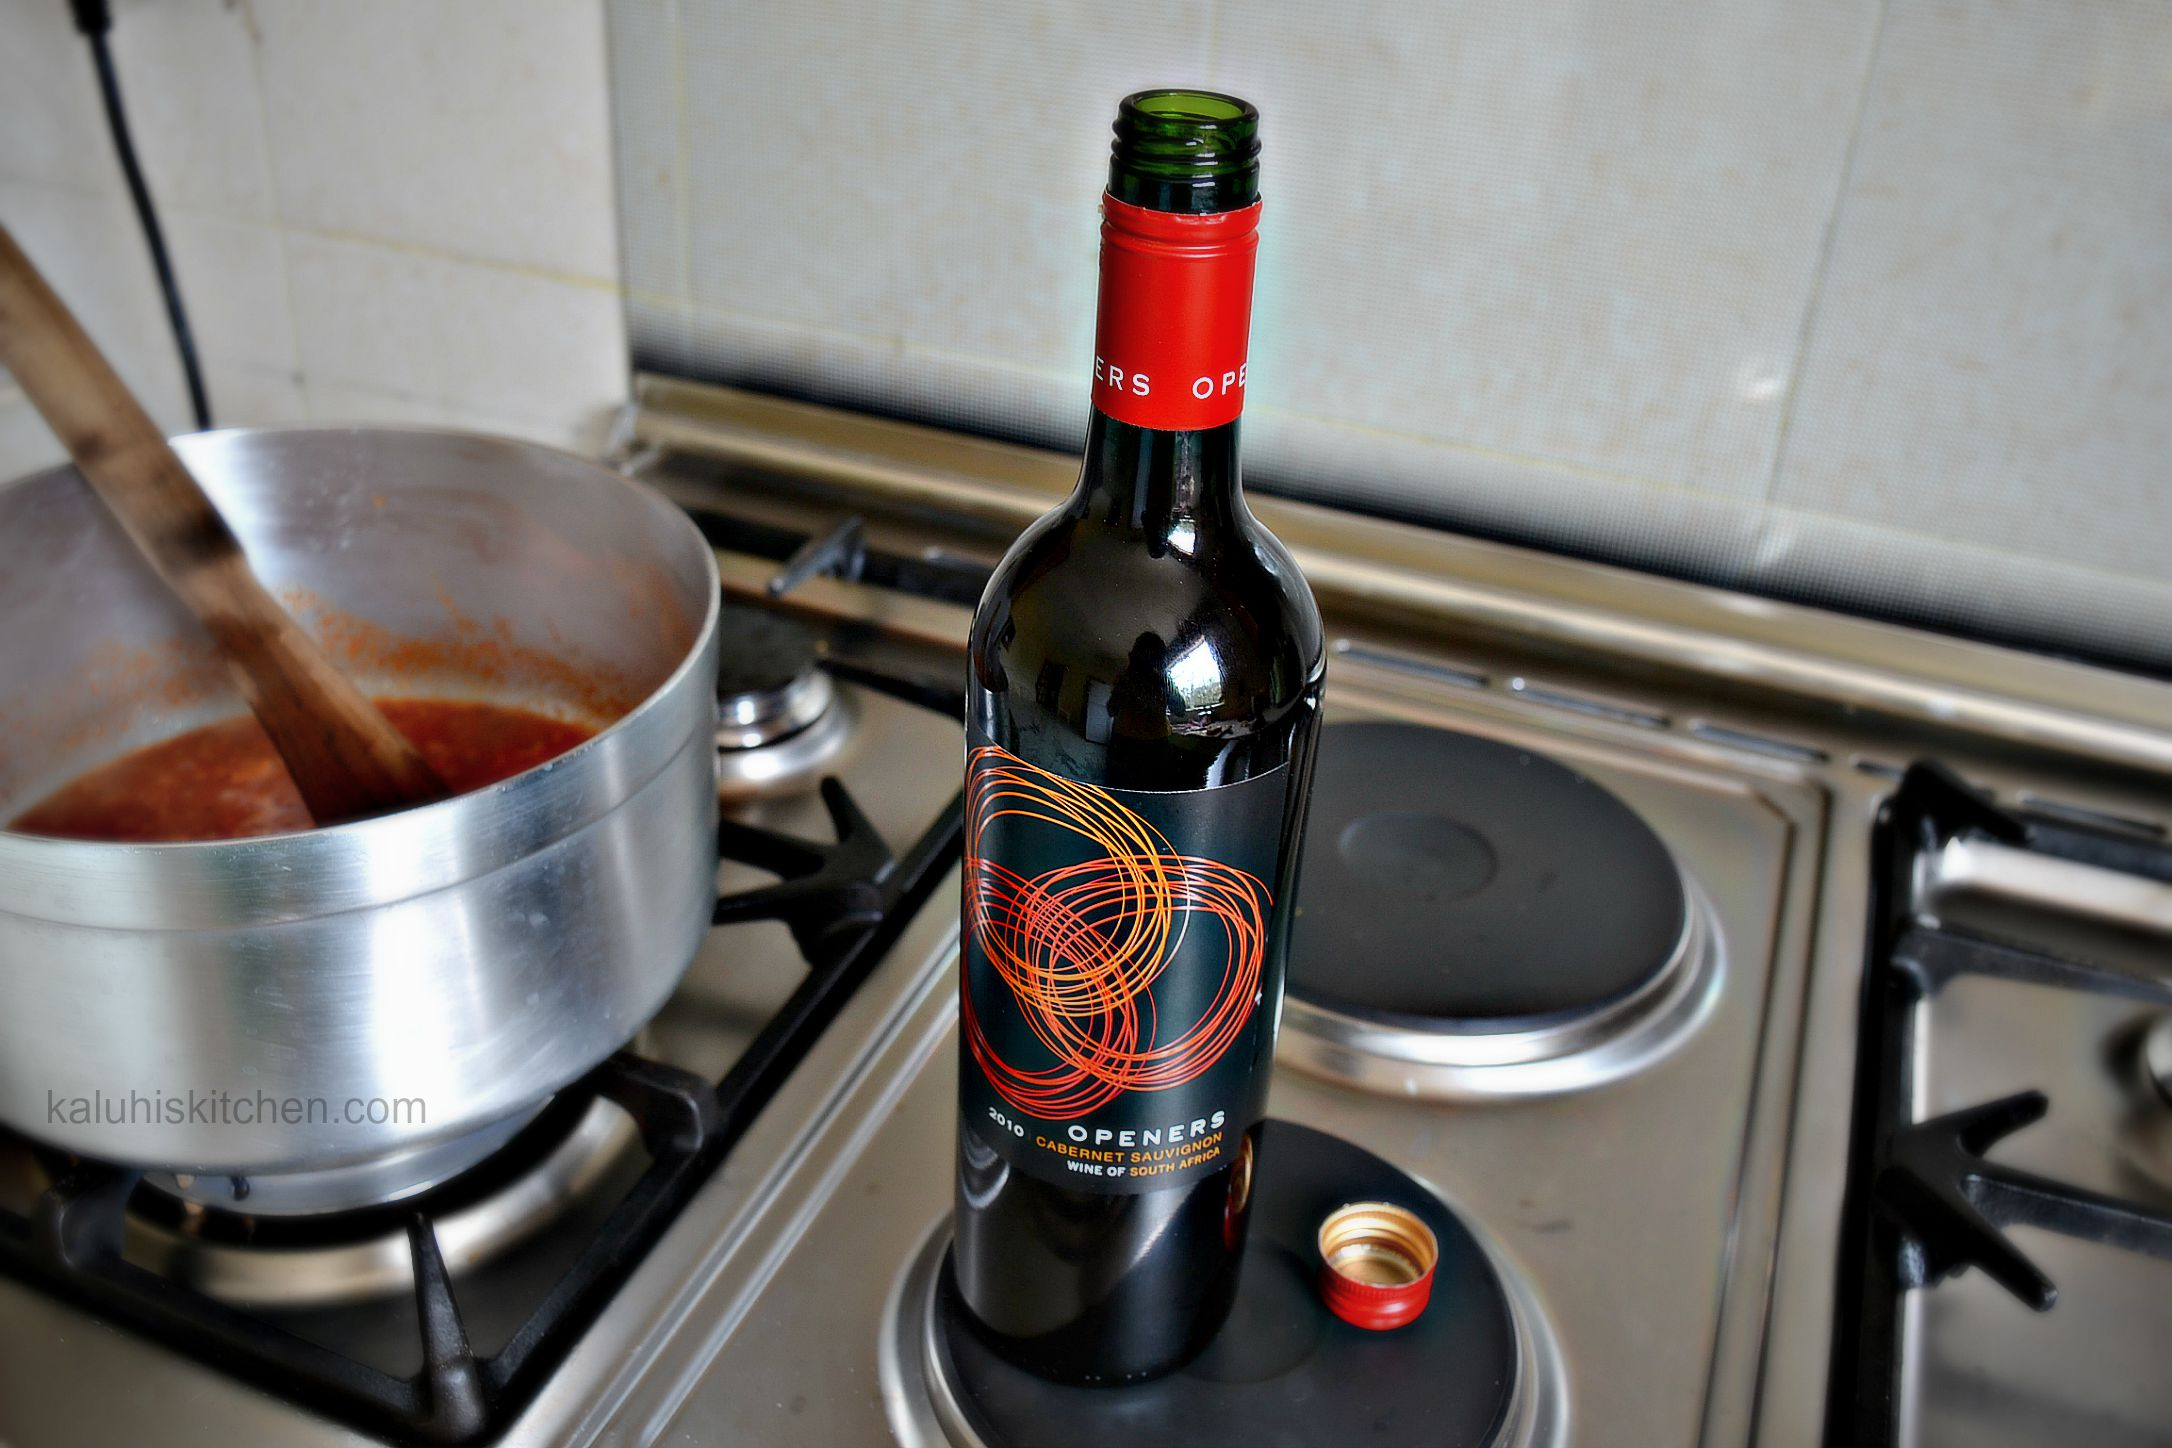 using wine in cooking and making food adds alot of character and depth to your food_red wine and tomato cheesy pasta_kaluhiskitchen.com